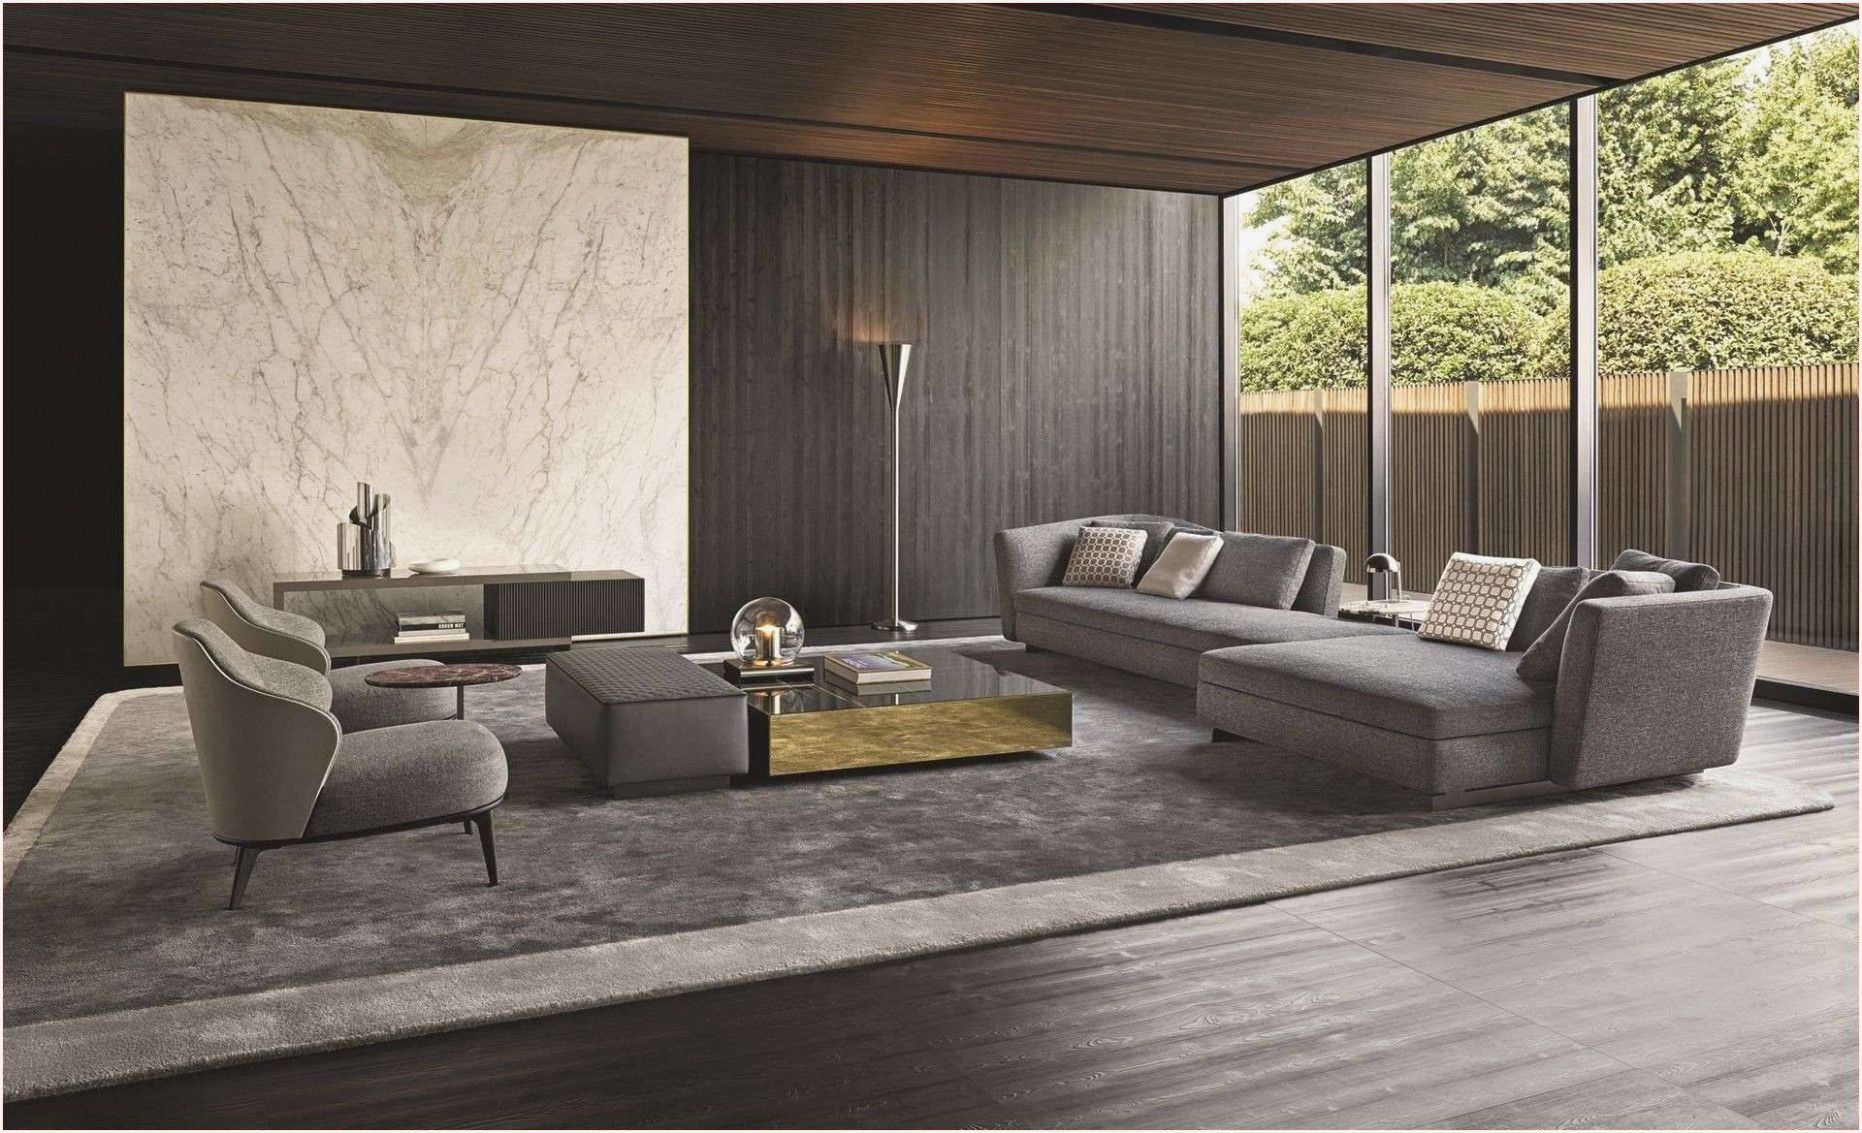 10 Aldi Wohnzimmer Regal in 10  Luxury living room, Luxury